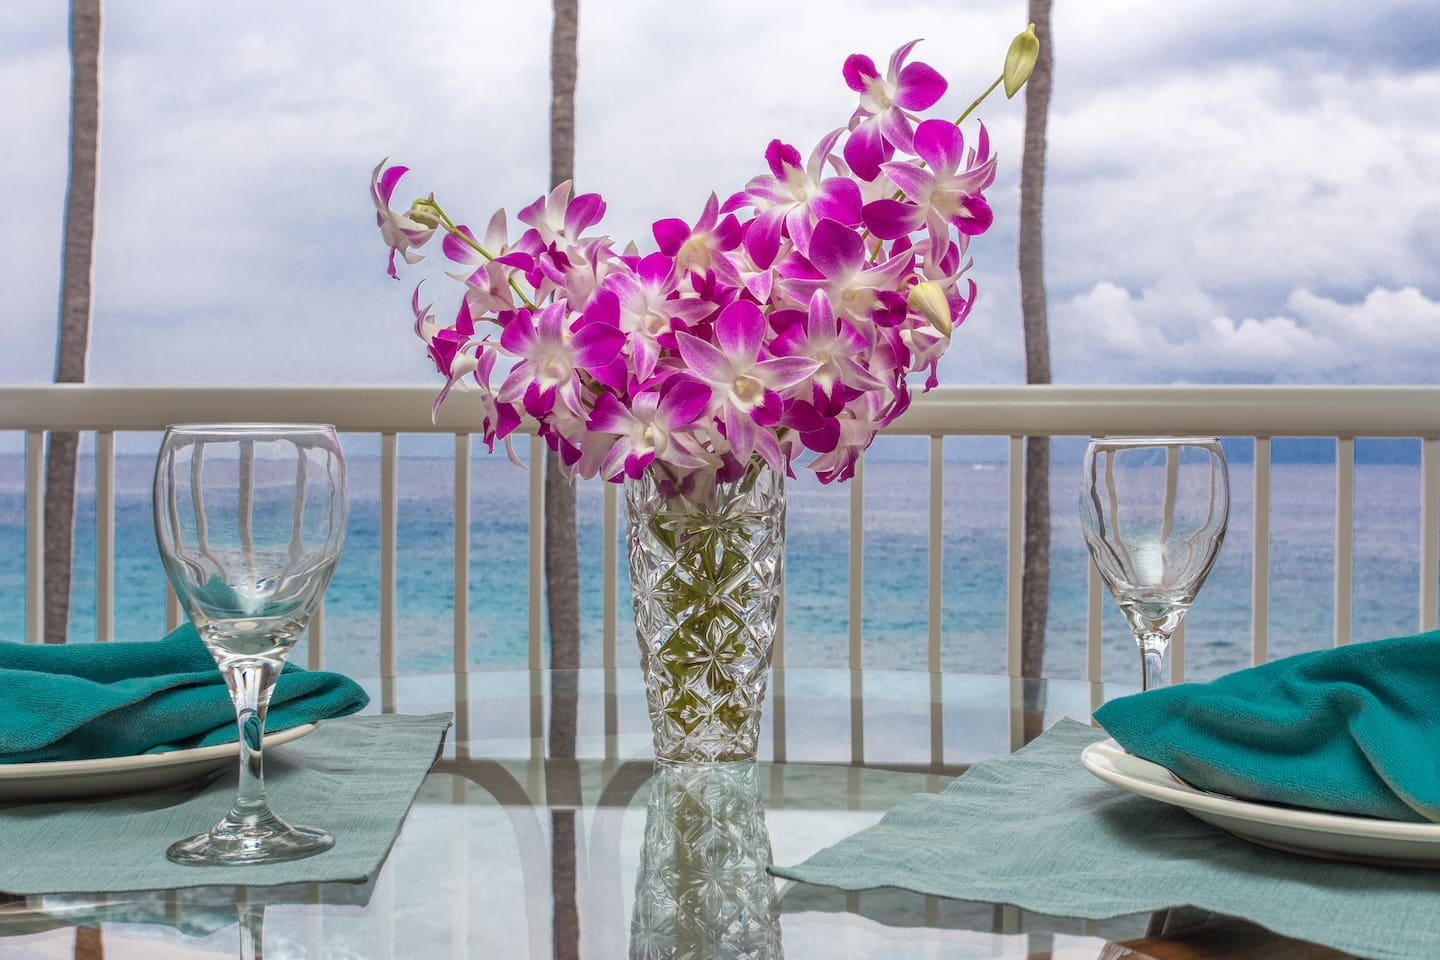 Dine on a glass top table right over the beautiful aqua ocean.